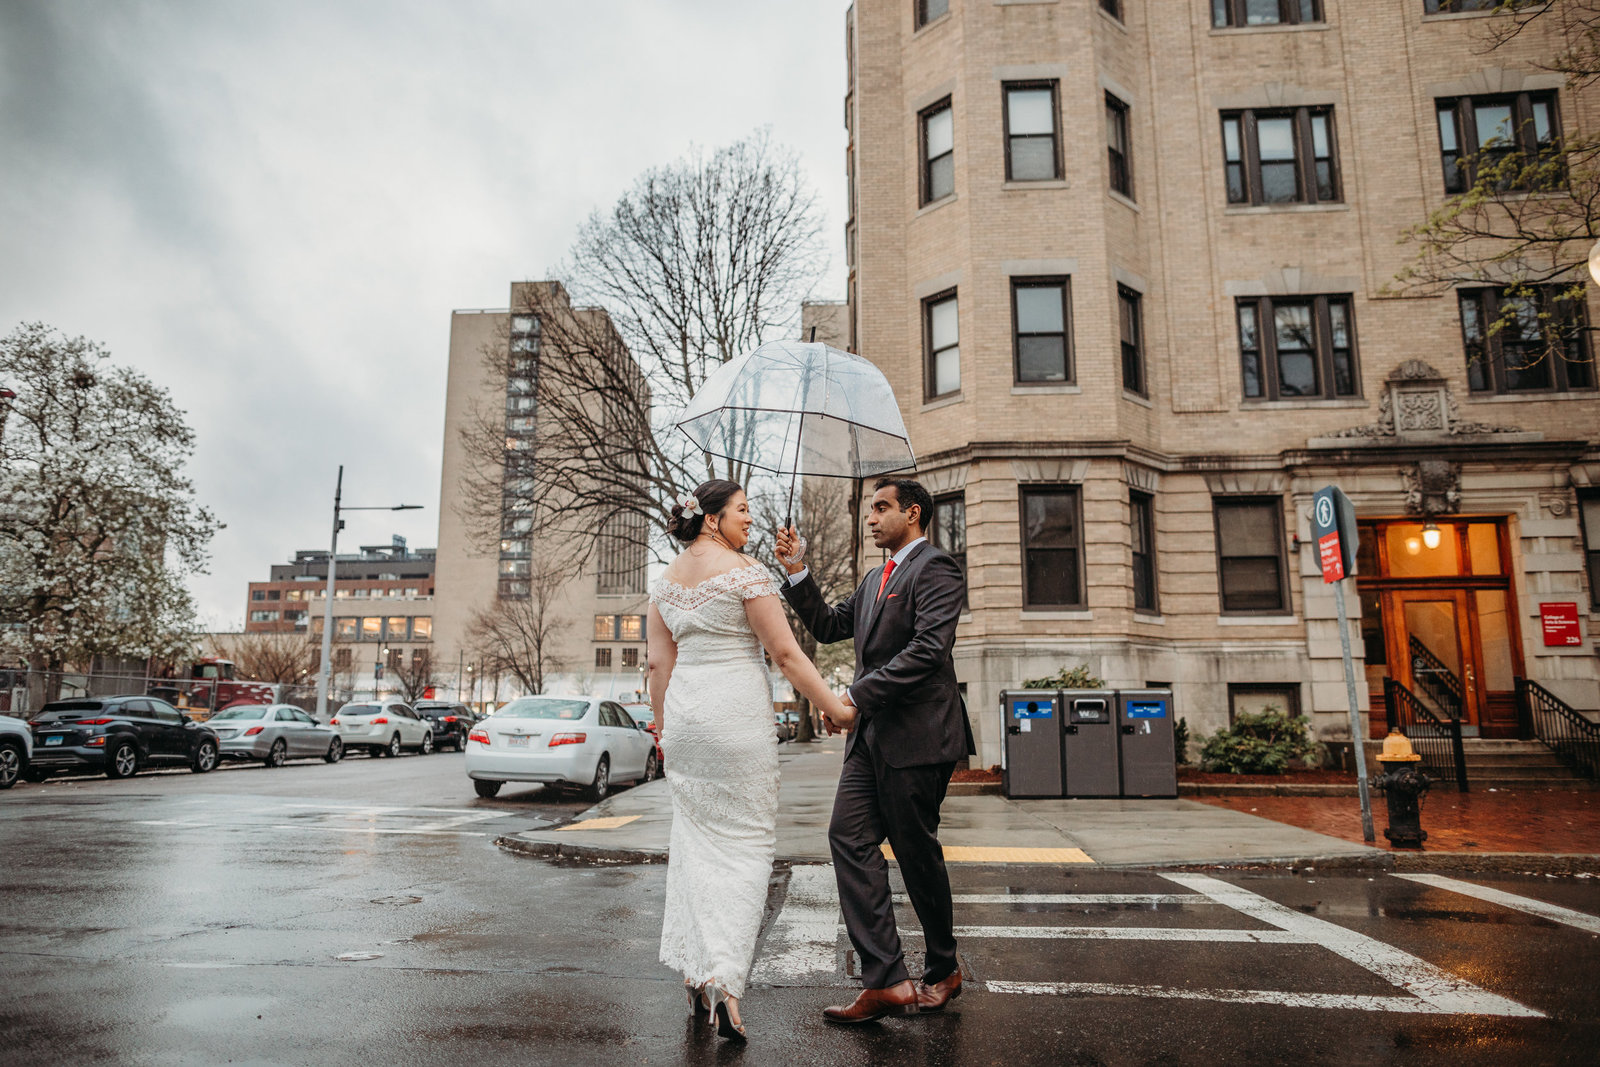 grooms holds umbrella for bride on rainy wedding day in boston ma